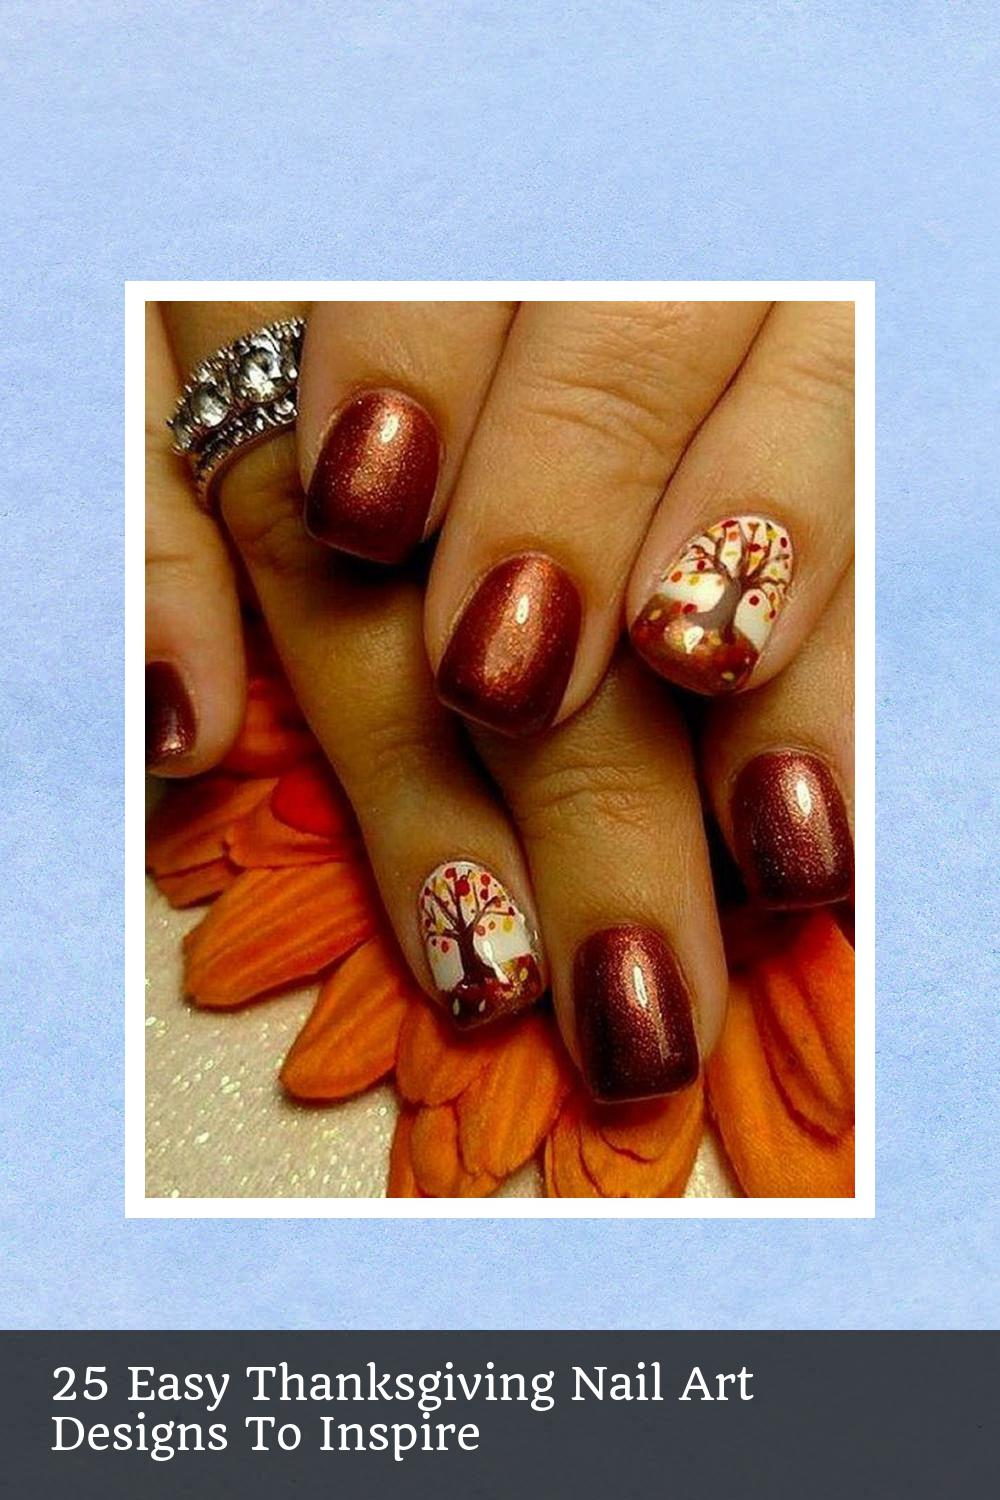 25 Easy Thanksgiving Nail Art Designs To Inspire 5